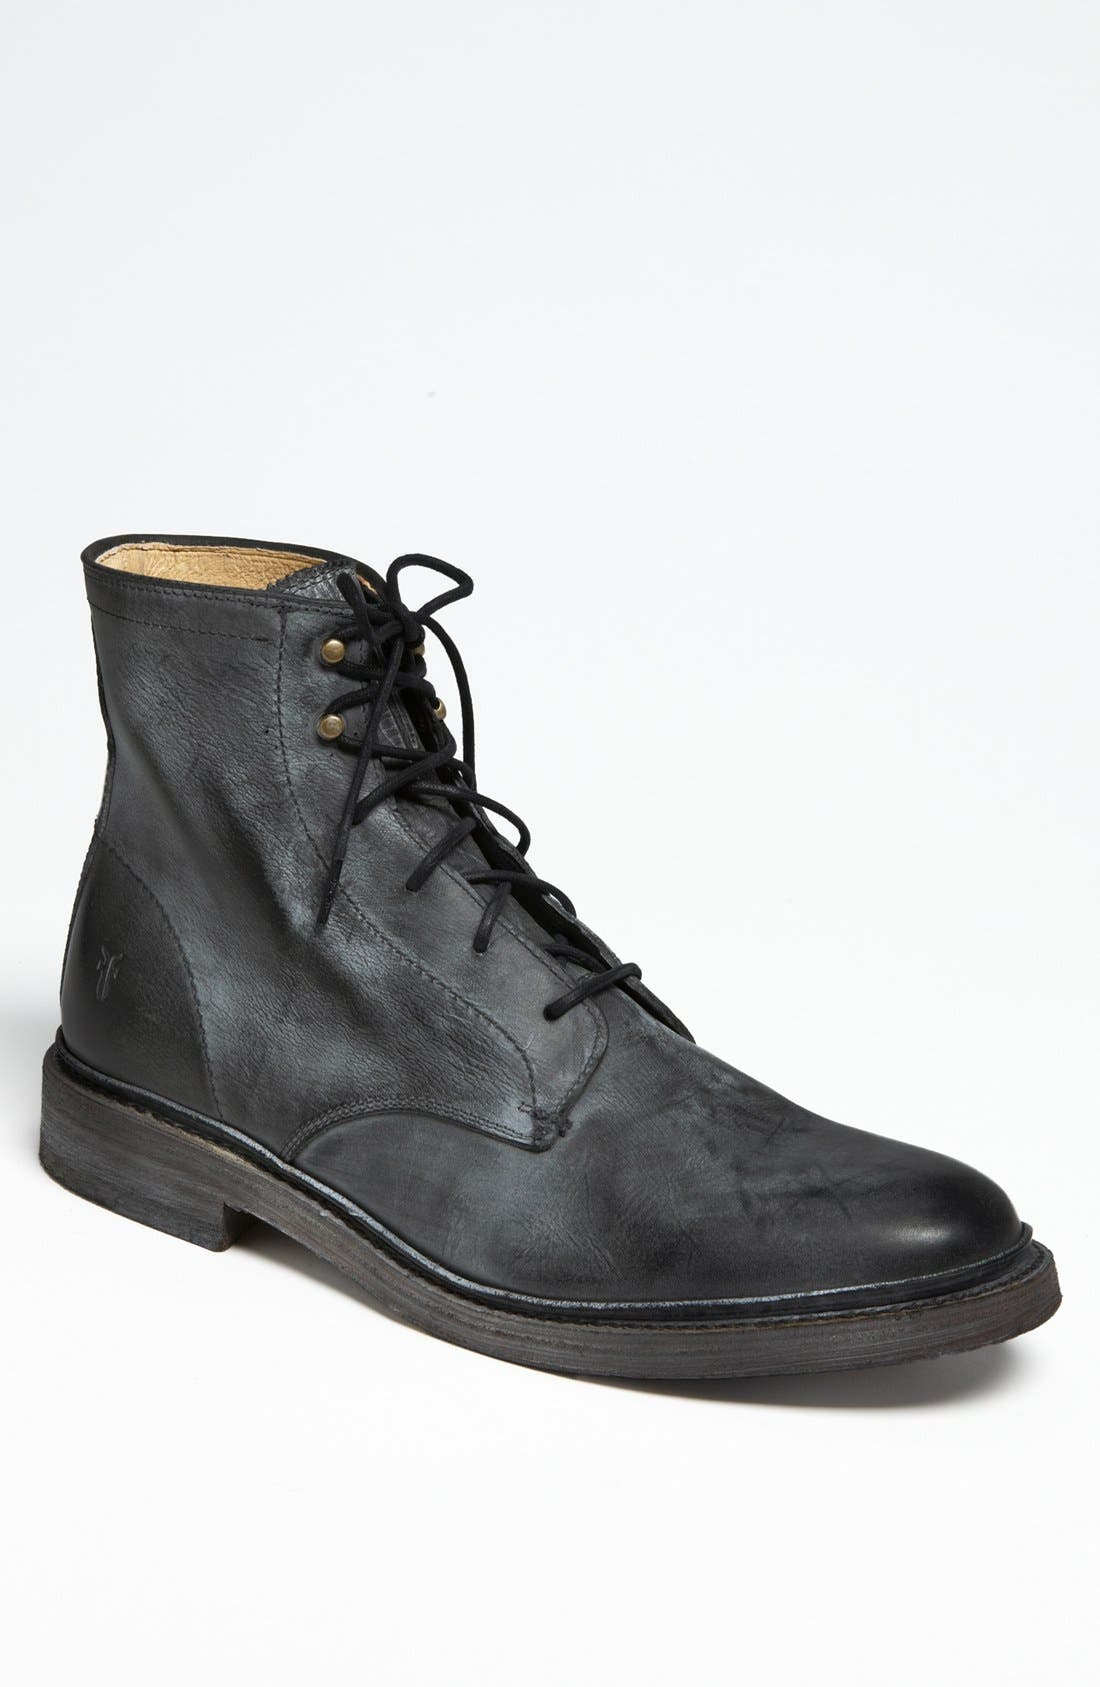 Alternate Image 1 Selected - Frye 'James' Boot (Men)